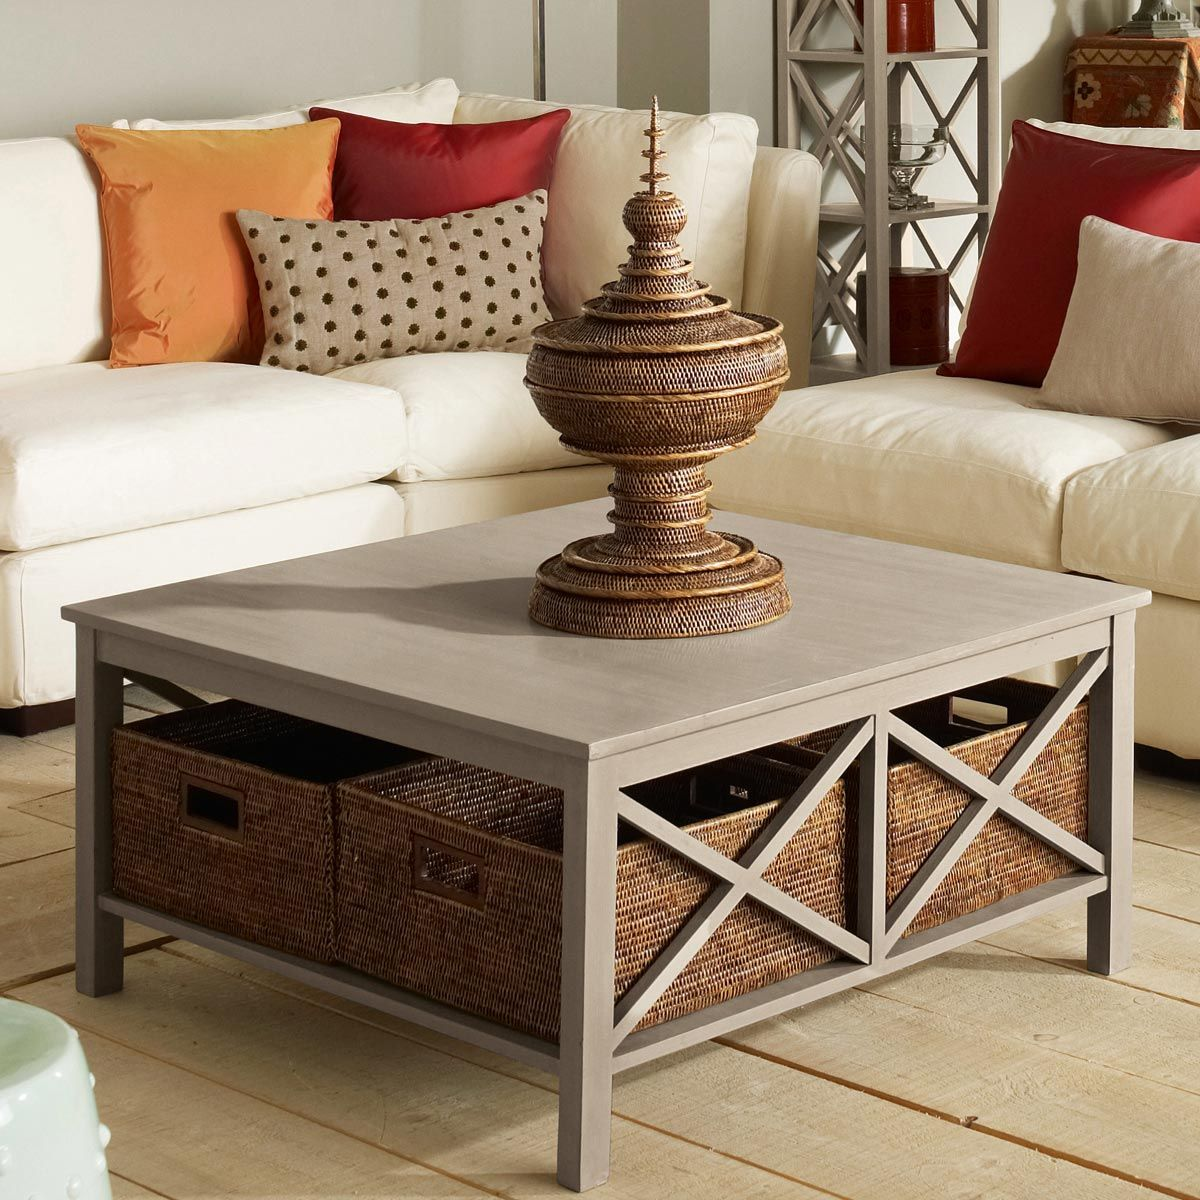 Saltire Large Square Coffee Table with Storage Large square coffee